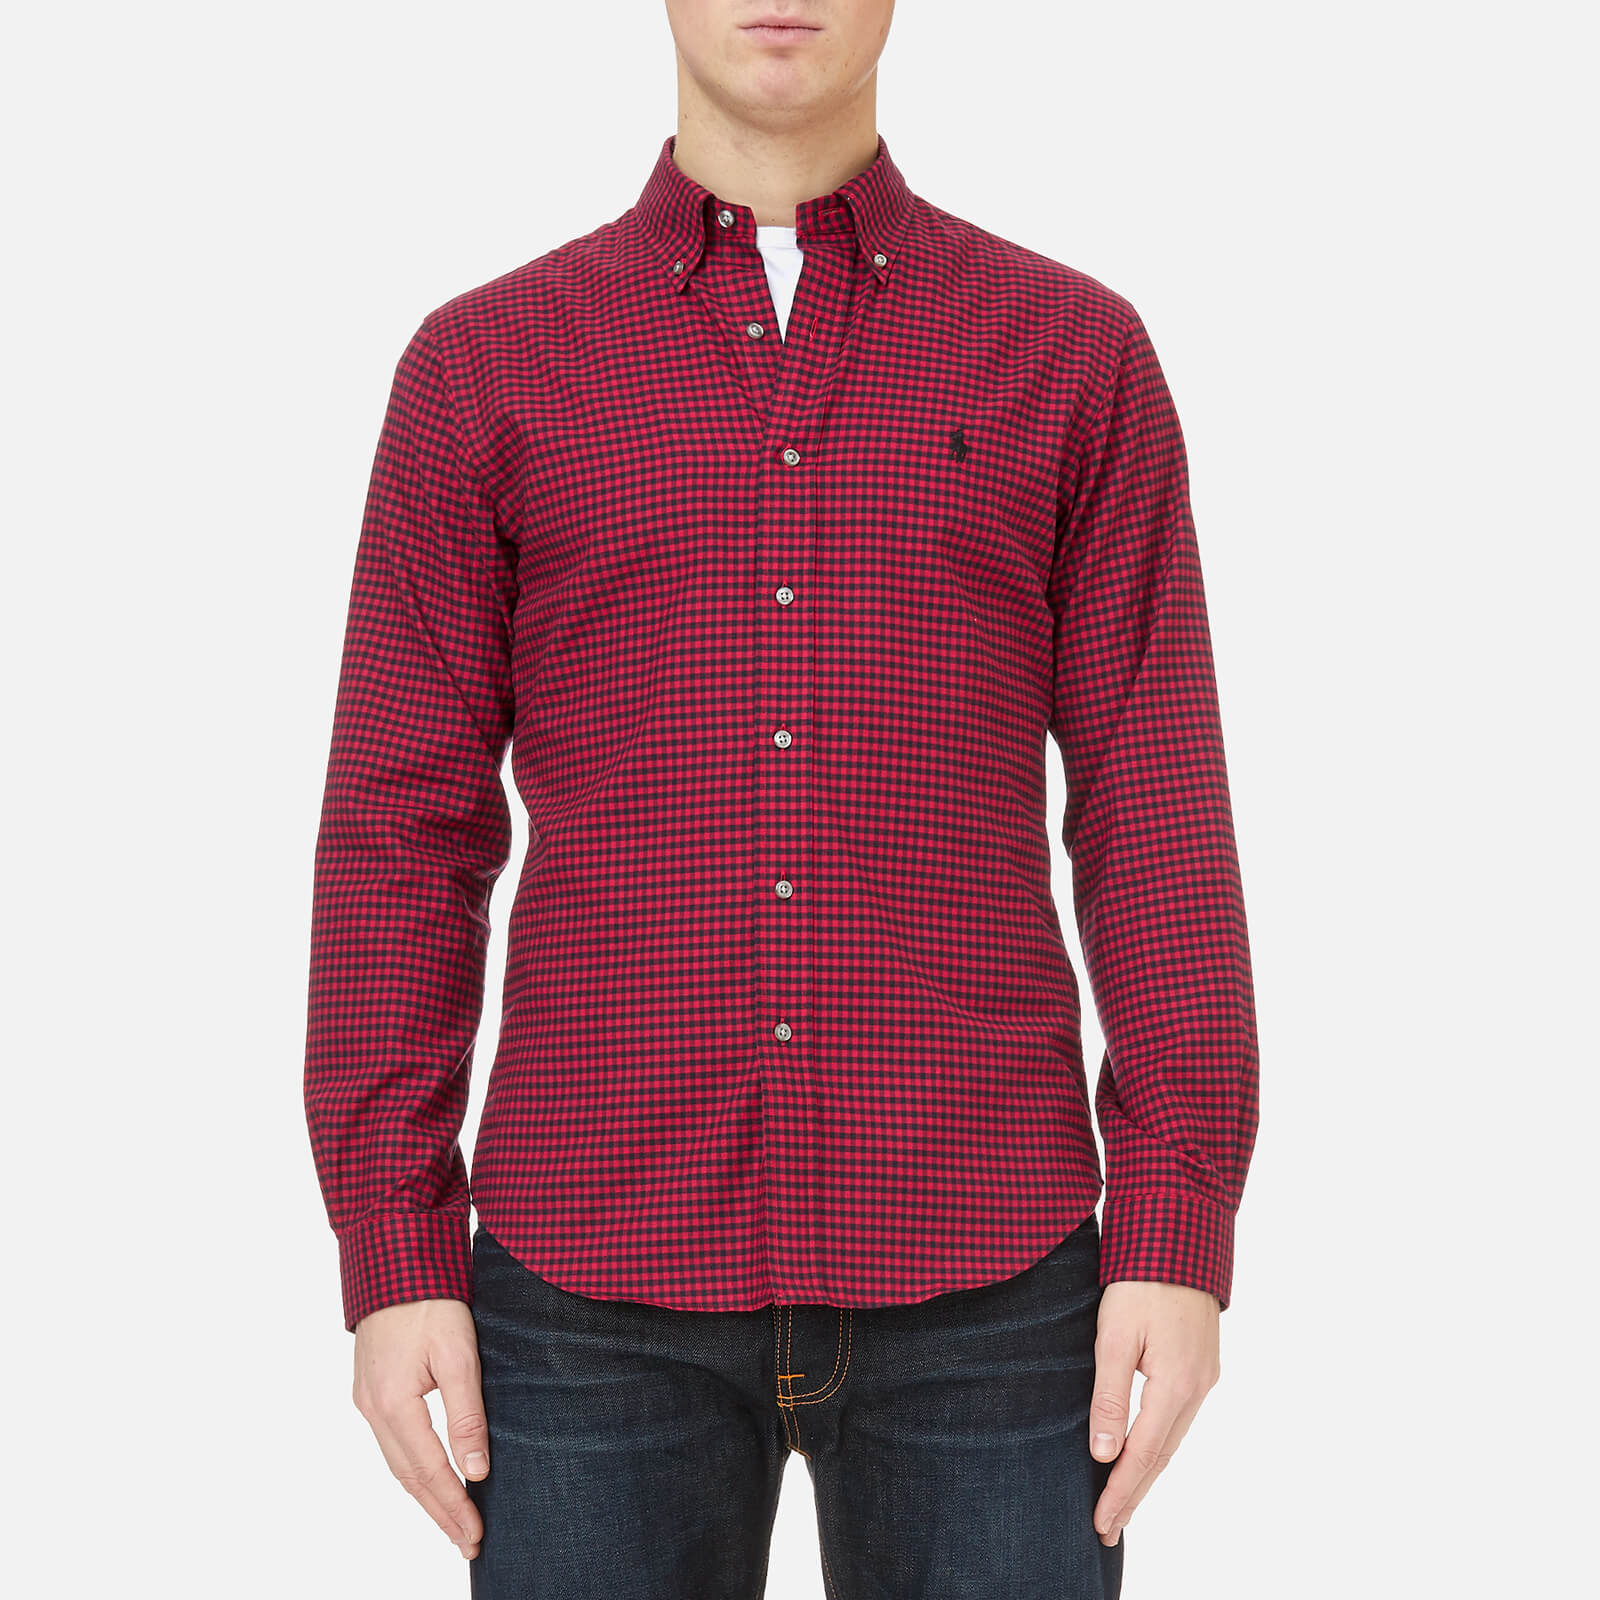 0bfcf3222283 Polo Ralph Lauren Men s Slim Fit Twill Shirt - Red Black Check - Free UK  Delivery over £50